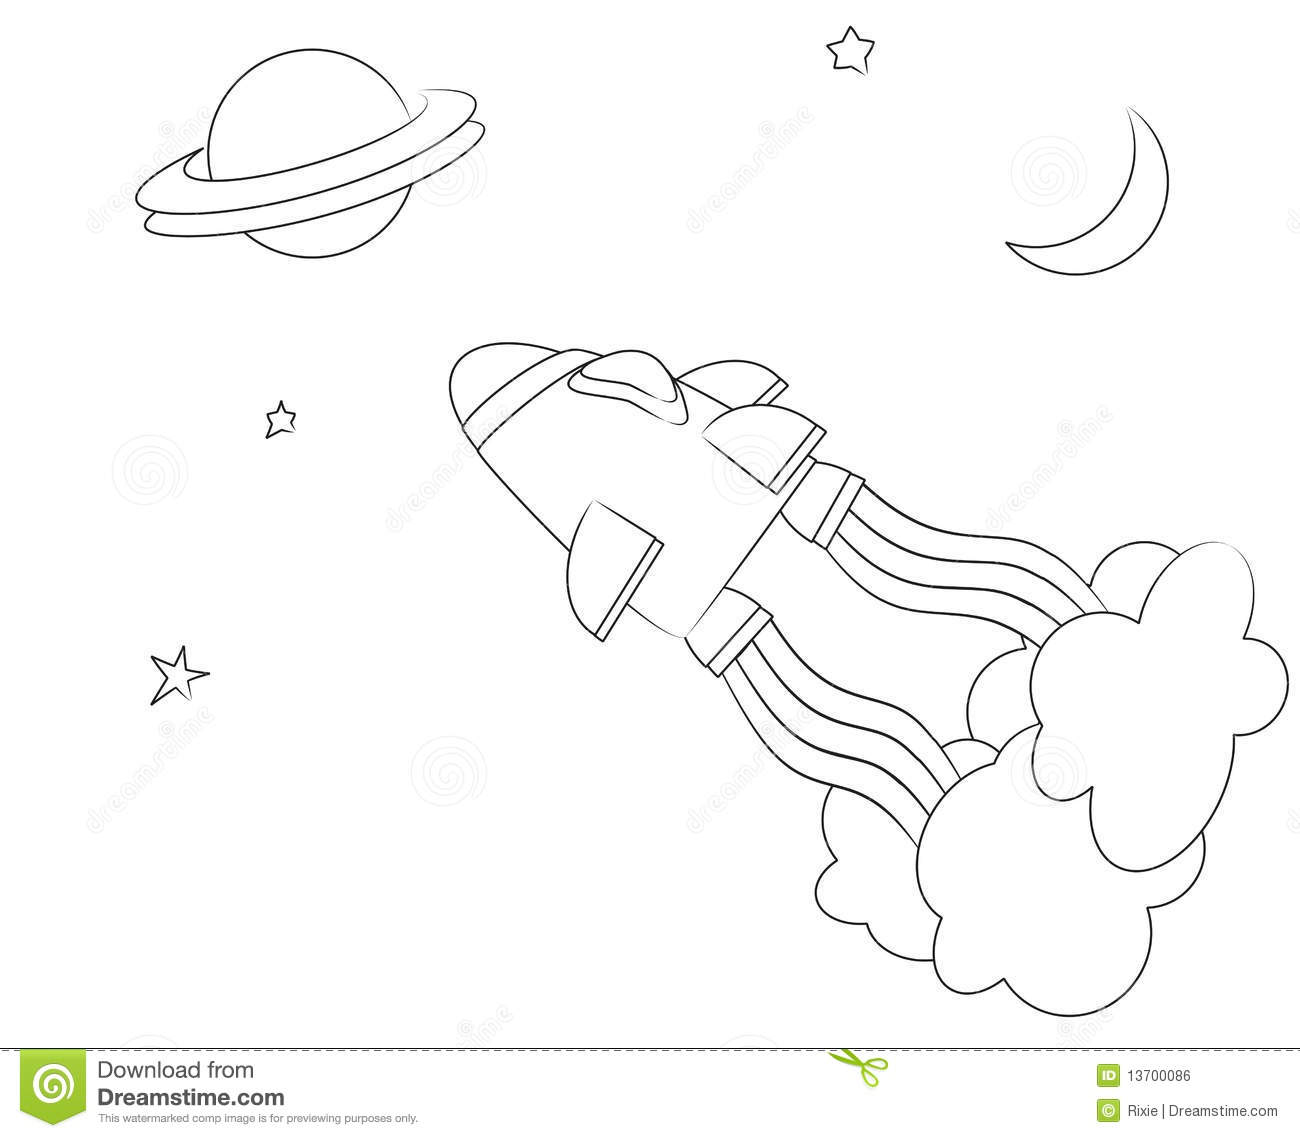 spaceship colouring page royalty free stock image image 13700086